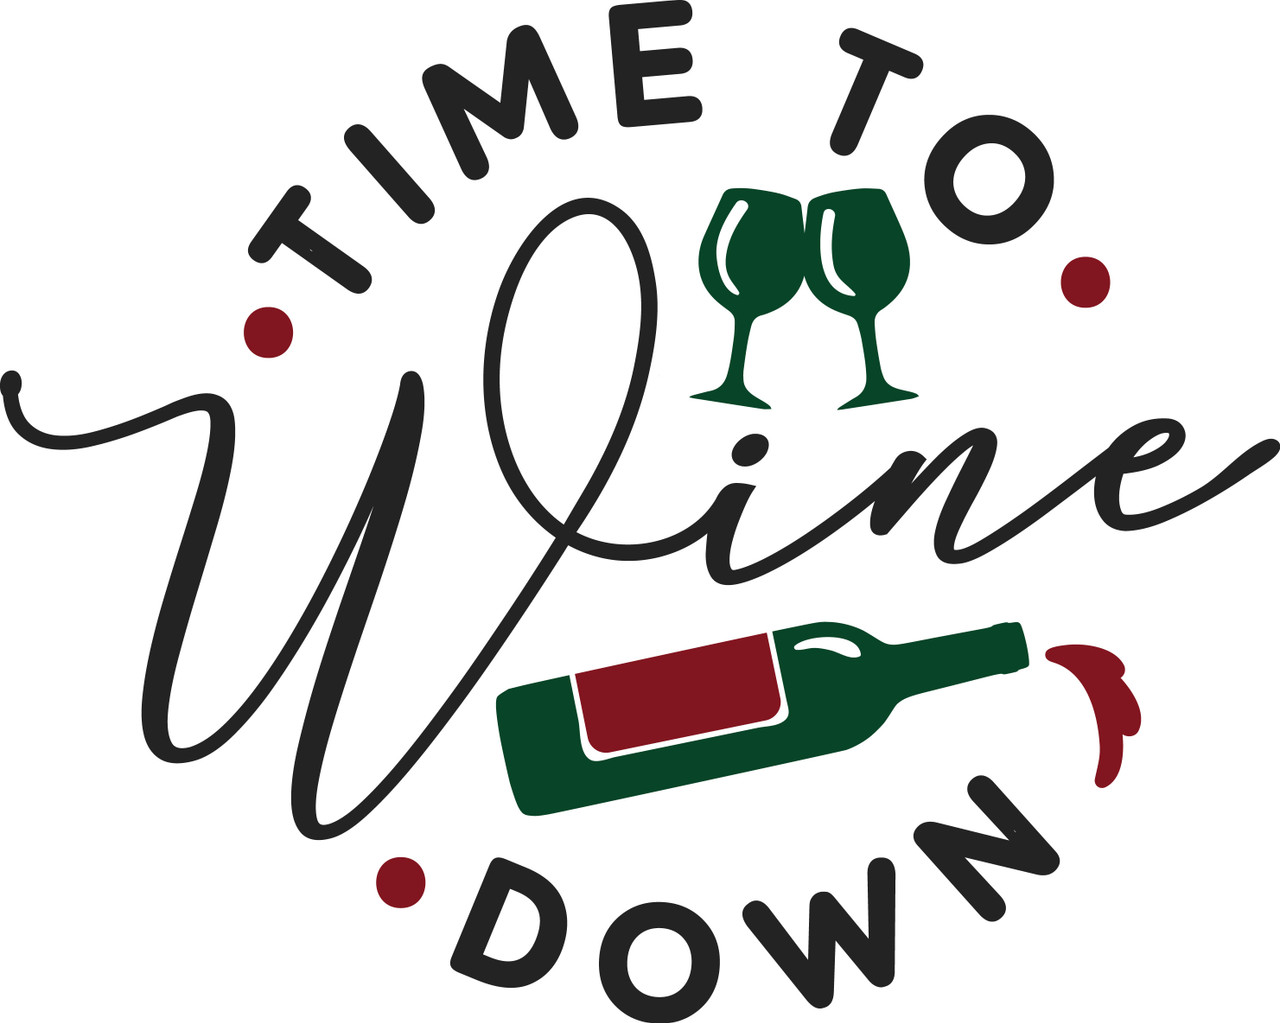 Free Time To Wine Down Svg Cut File Craftables